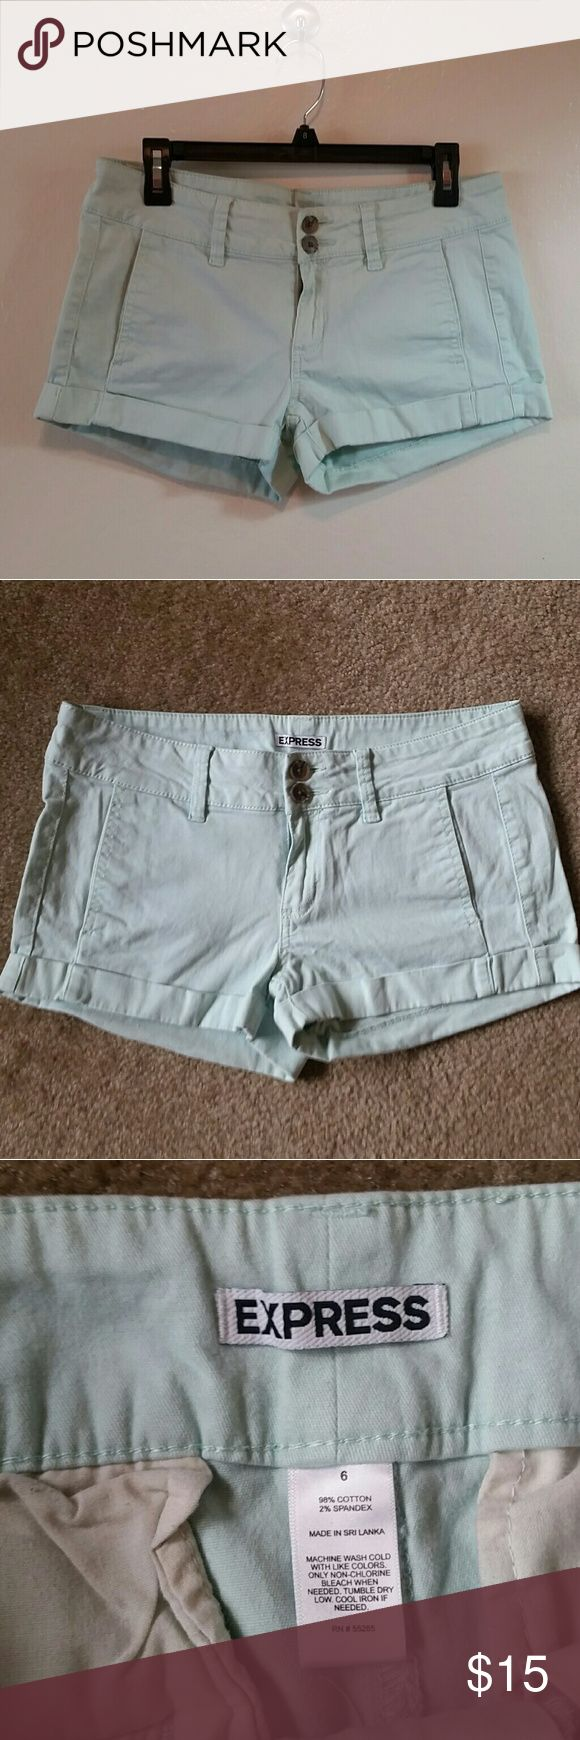 EXPRESS Mint Shorts Like new condition! Express Shorts